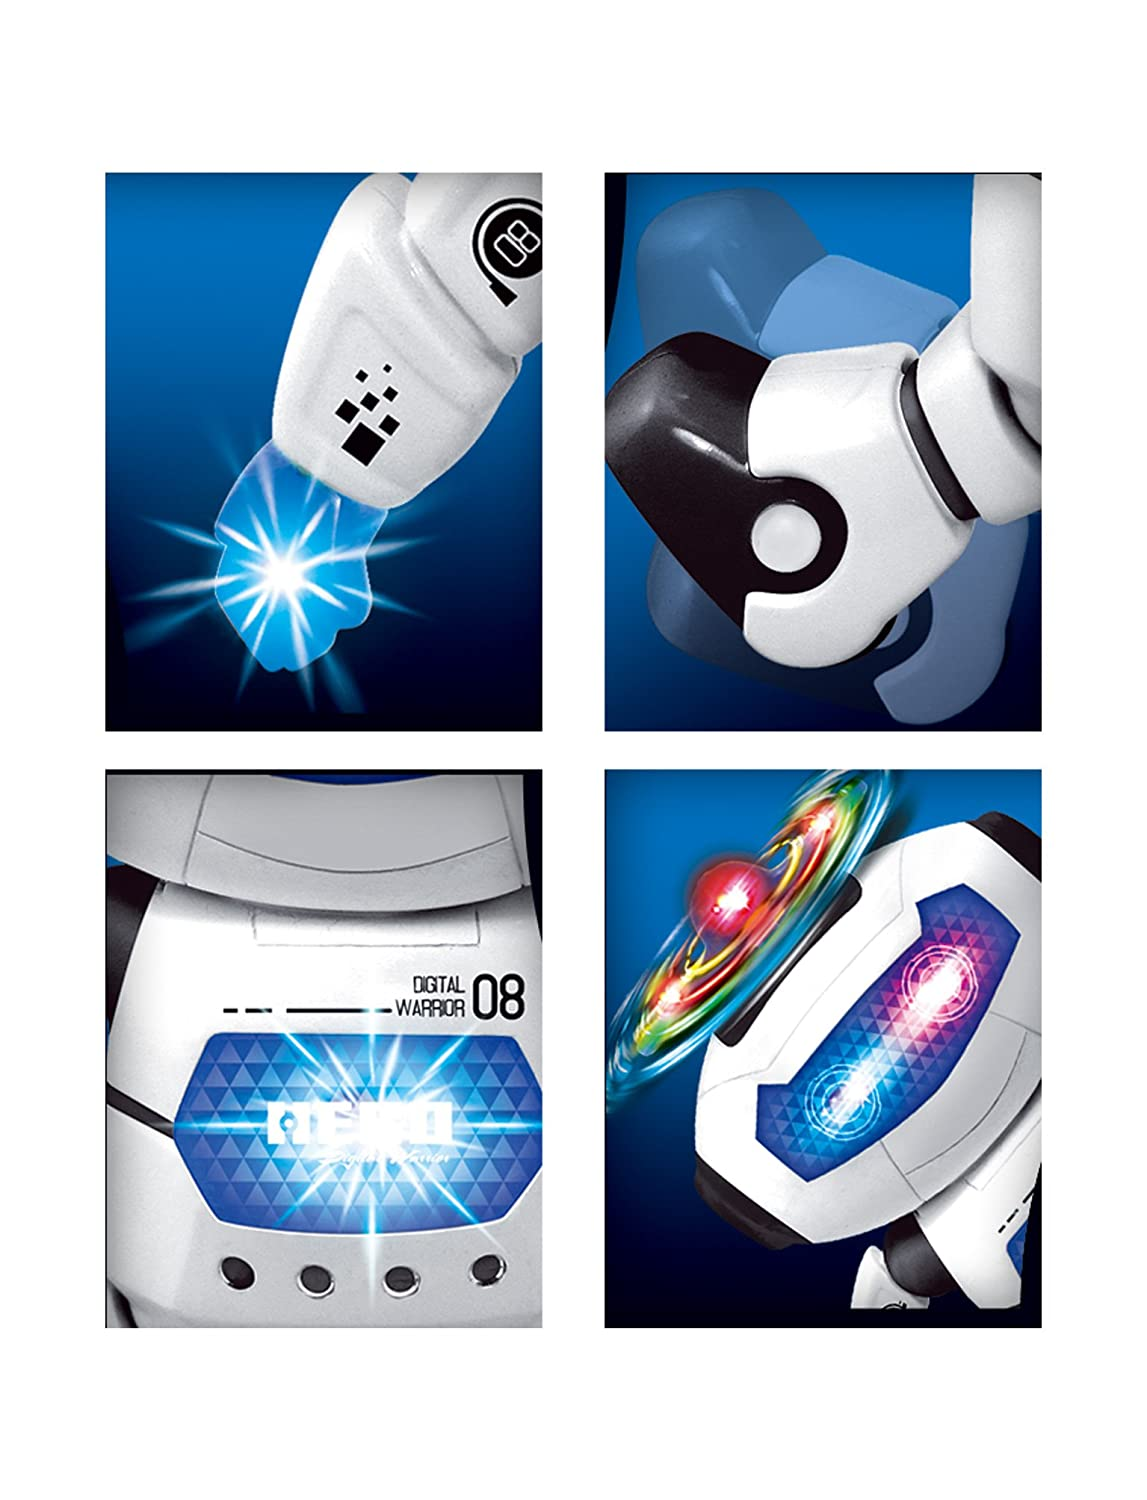 PowerTRC Electronic Walking Dancing Twirling 360 Robot Toys with Music and Lights